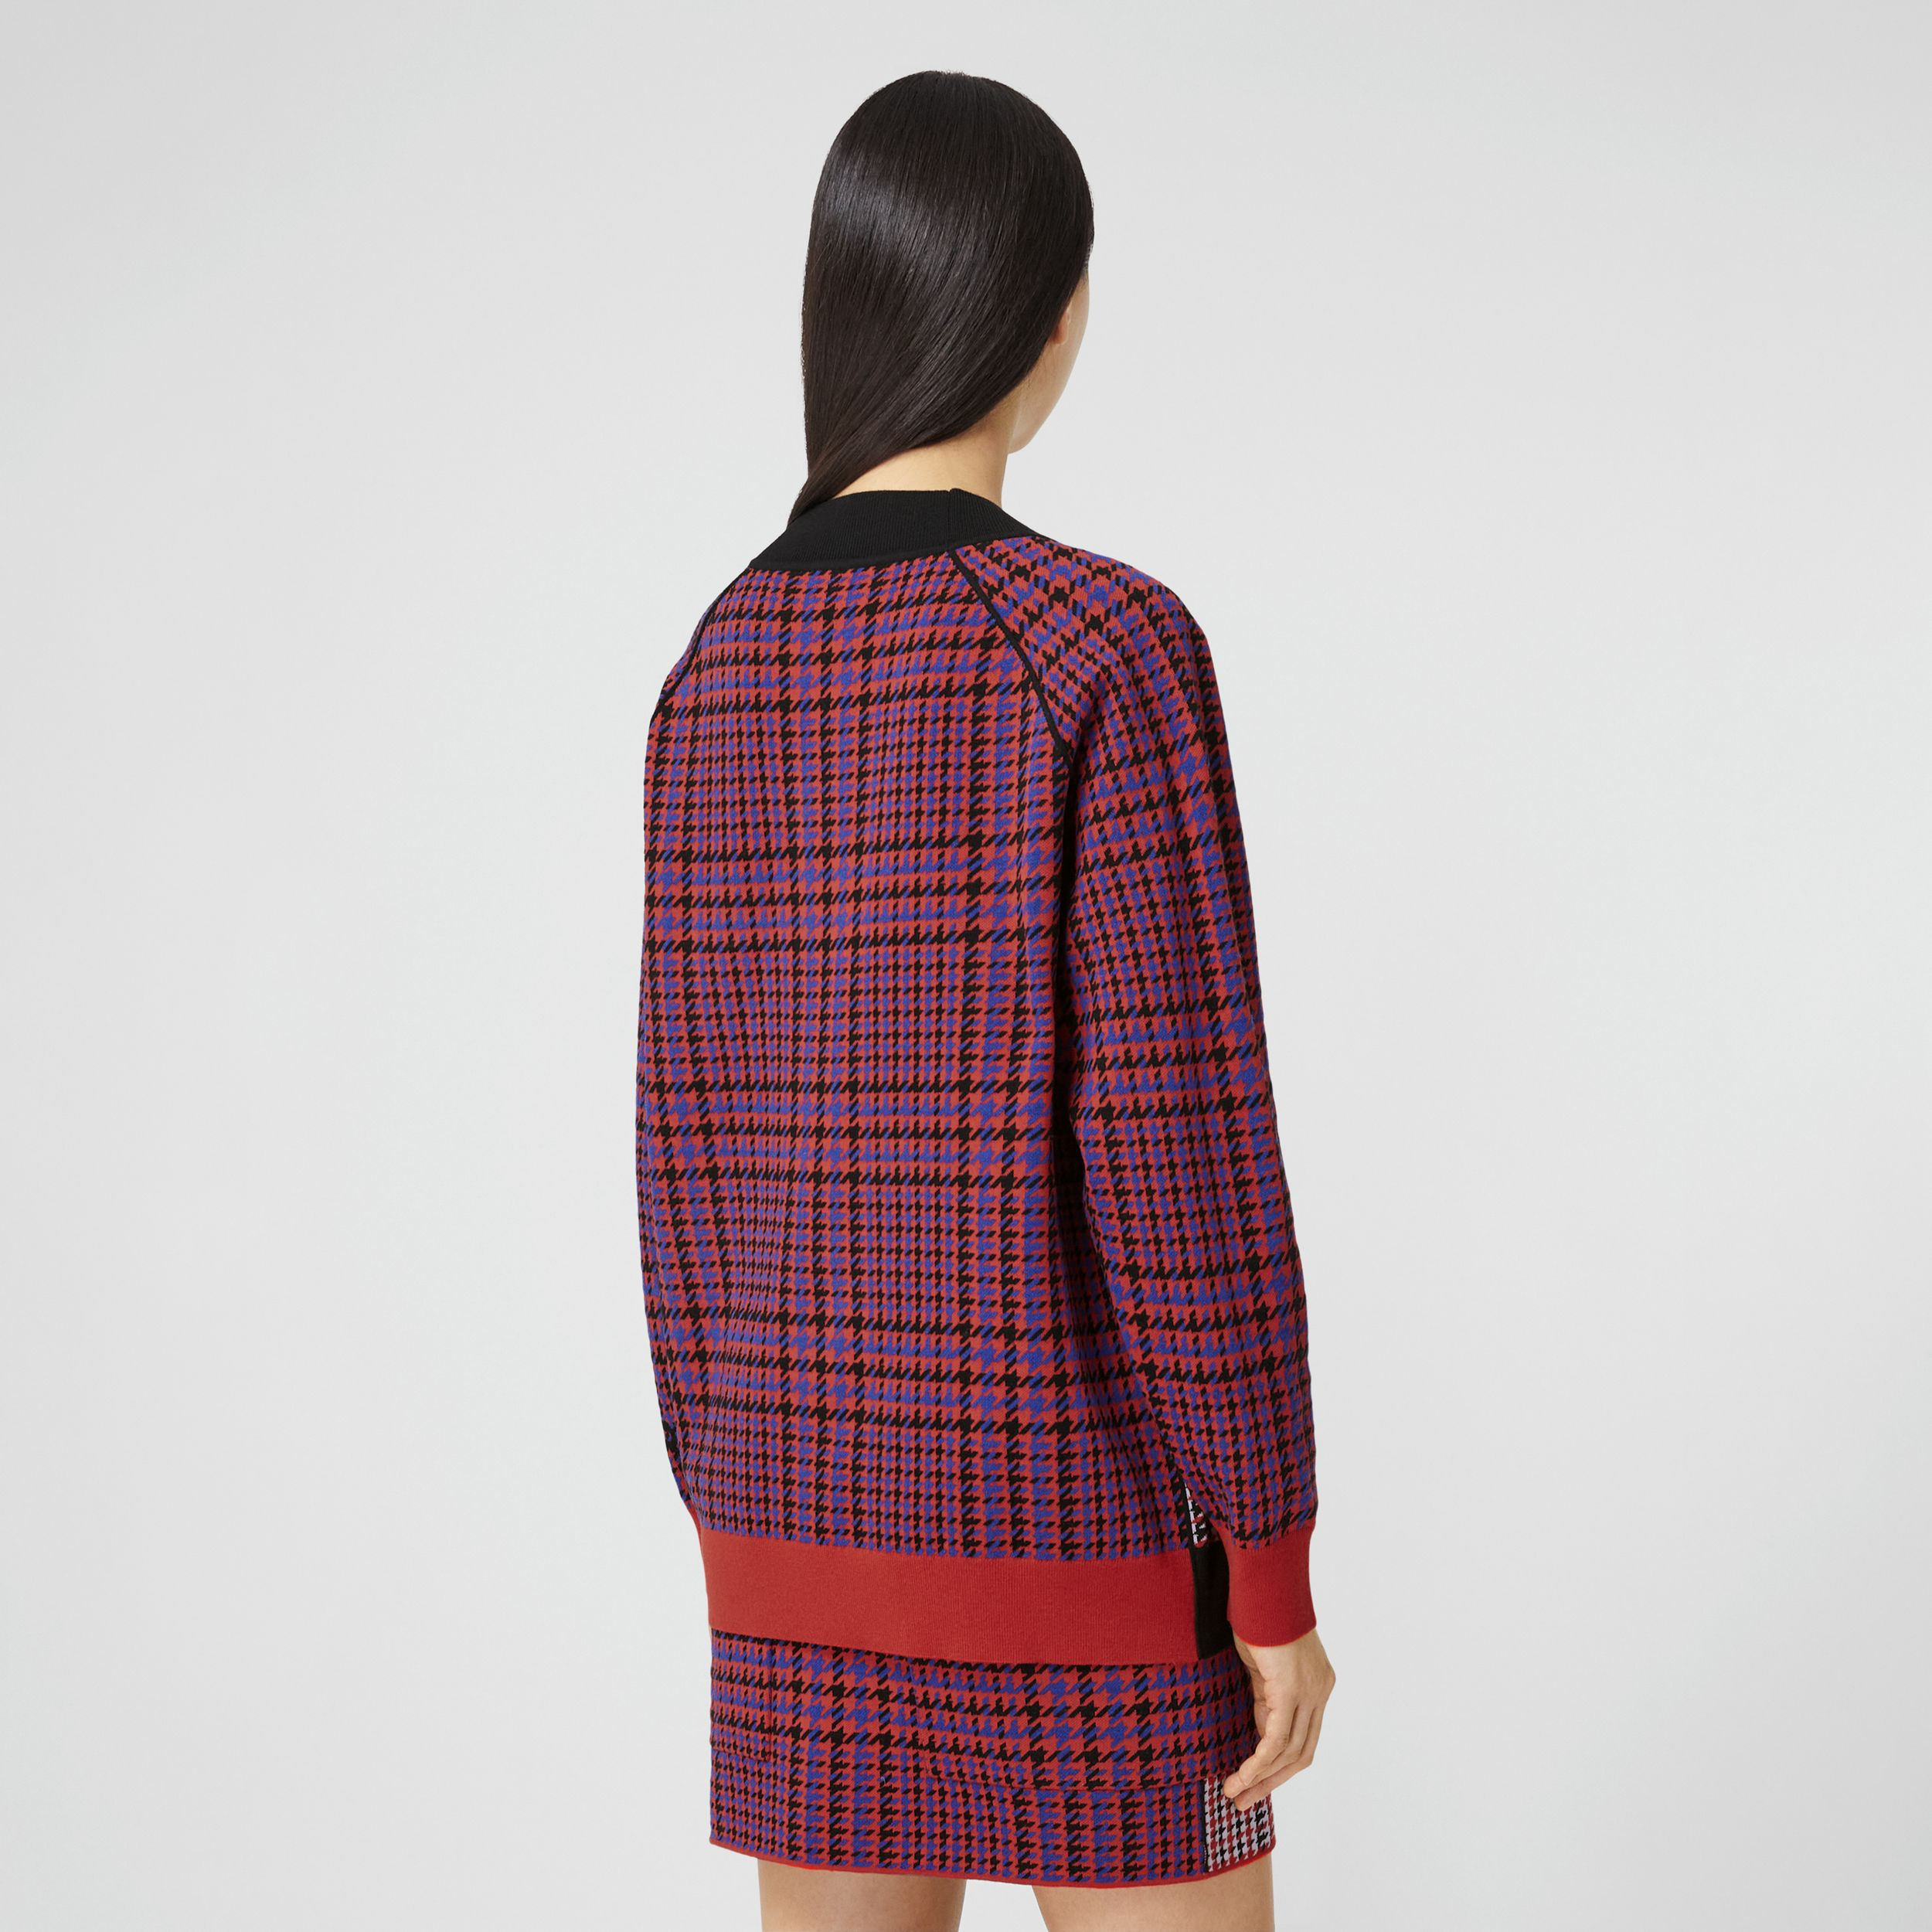 Houndstooth Check Technical Merino Wool Sweater in Bright Red - Women | Burberry - 3